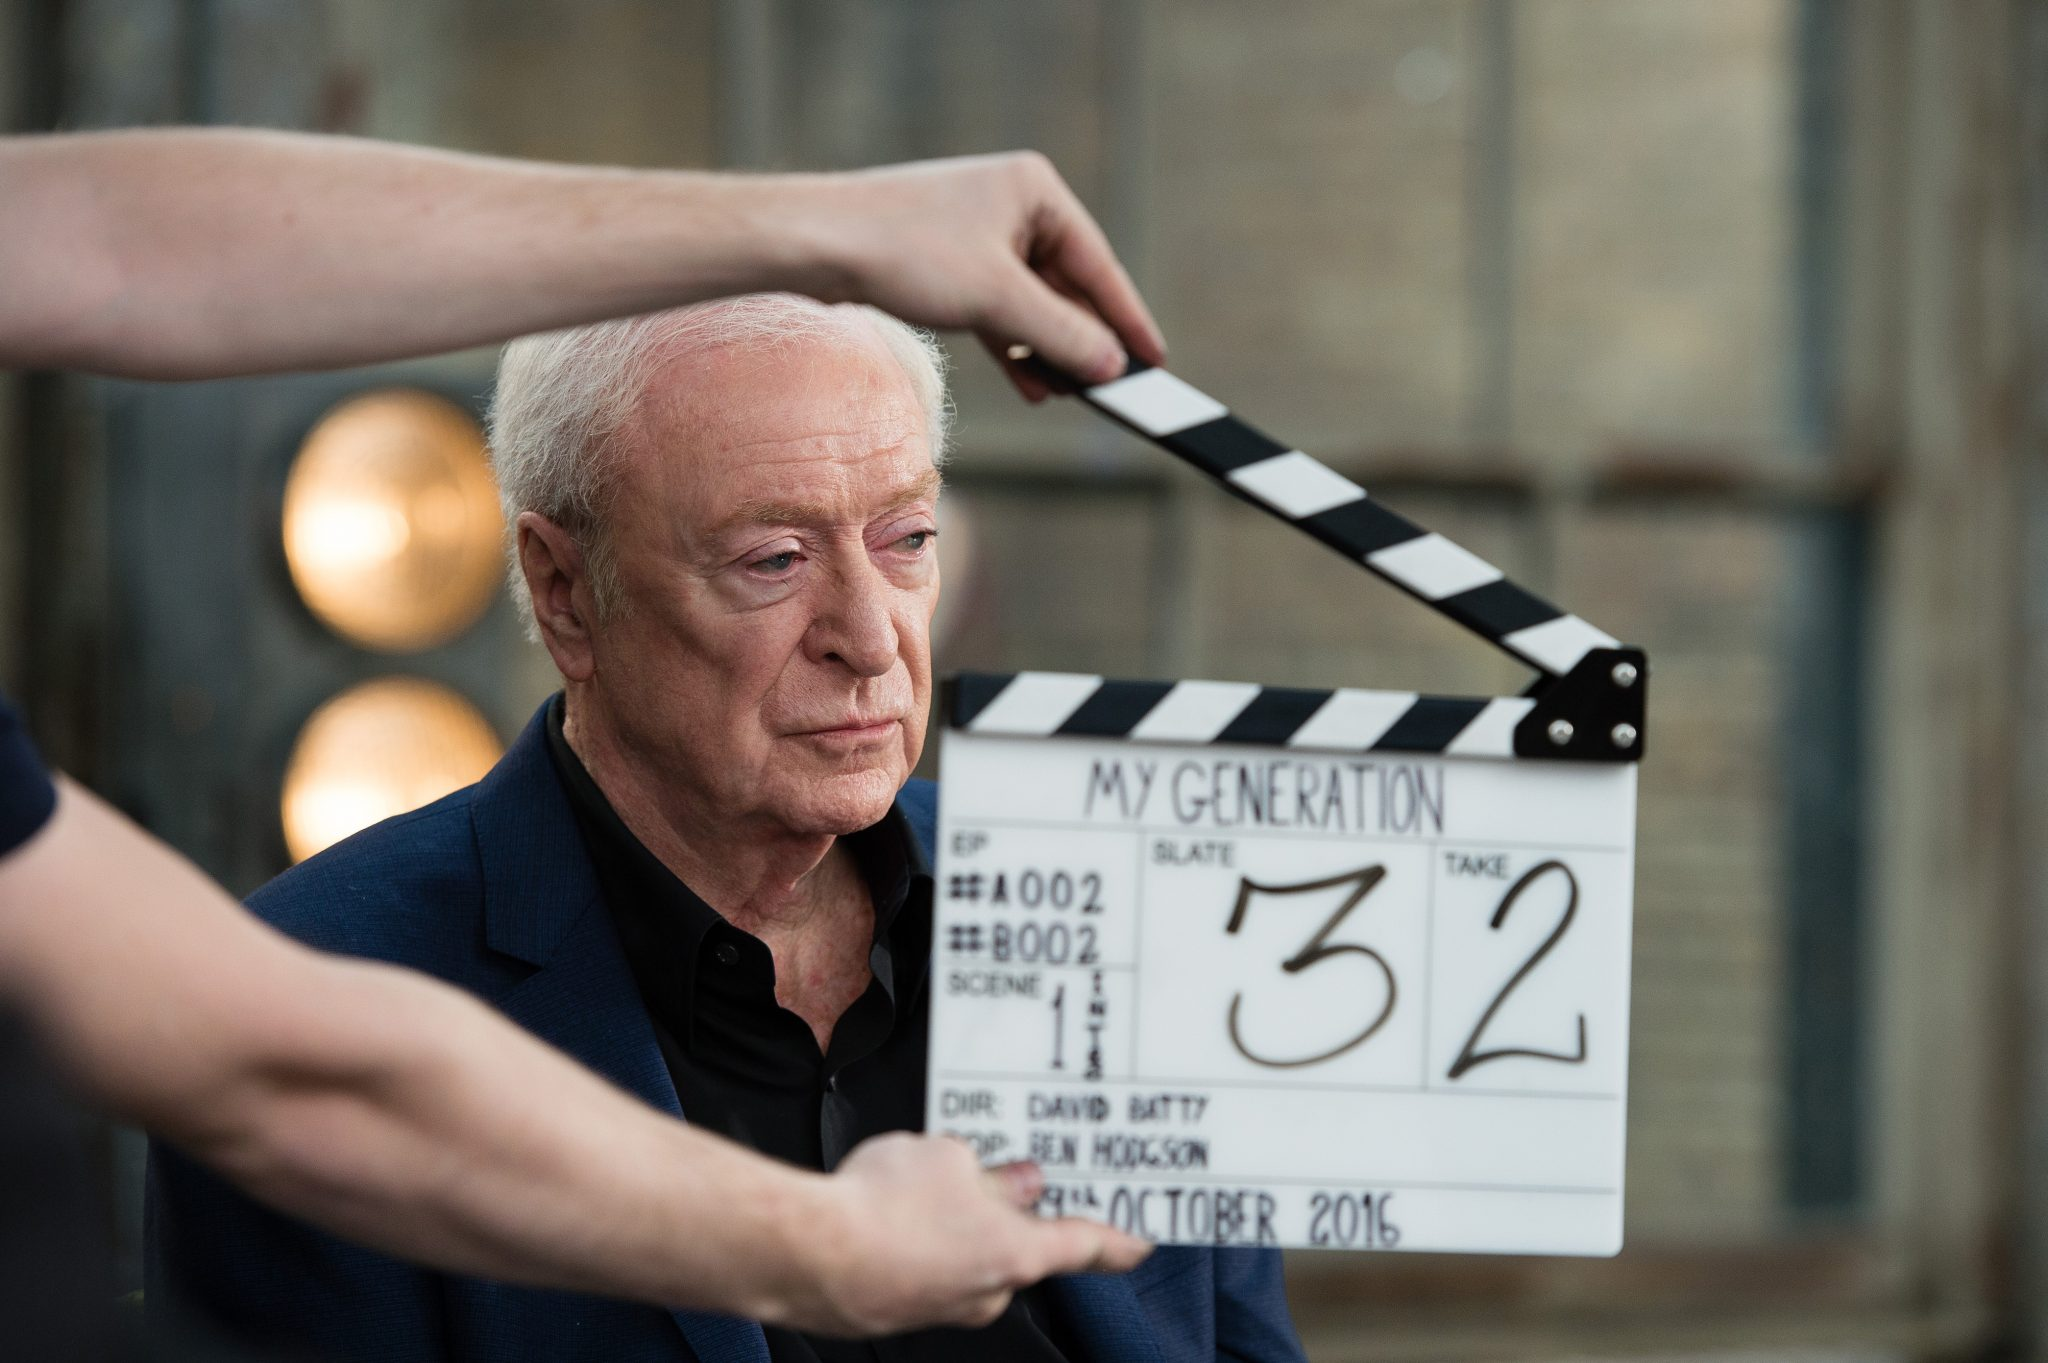 My Generation, intervista al regista David Batty e a Michael Caine